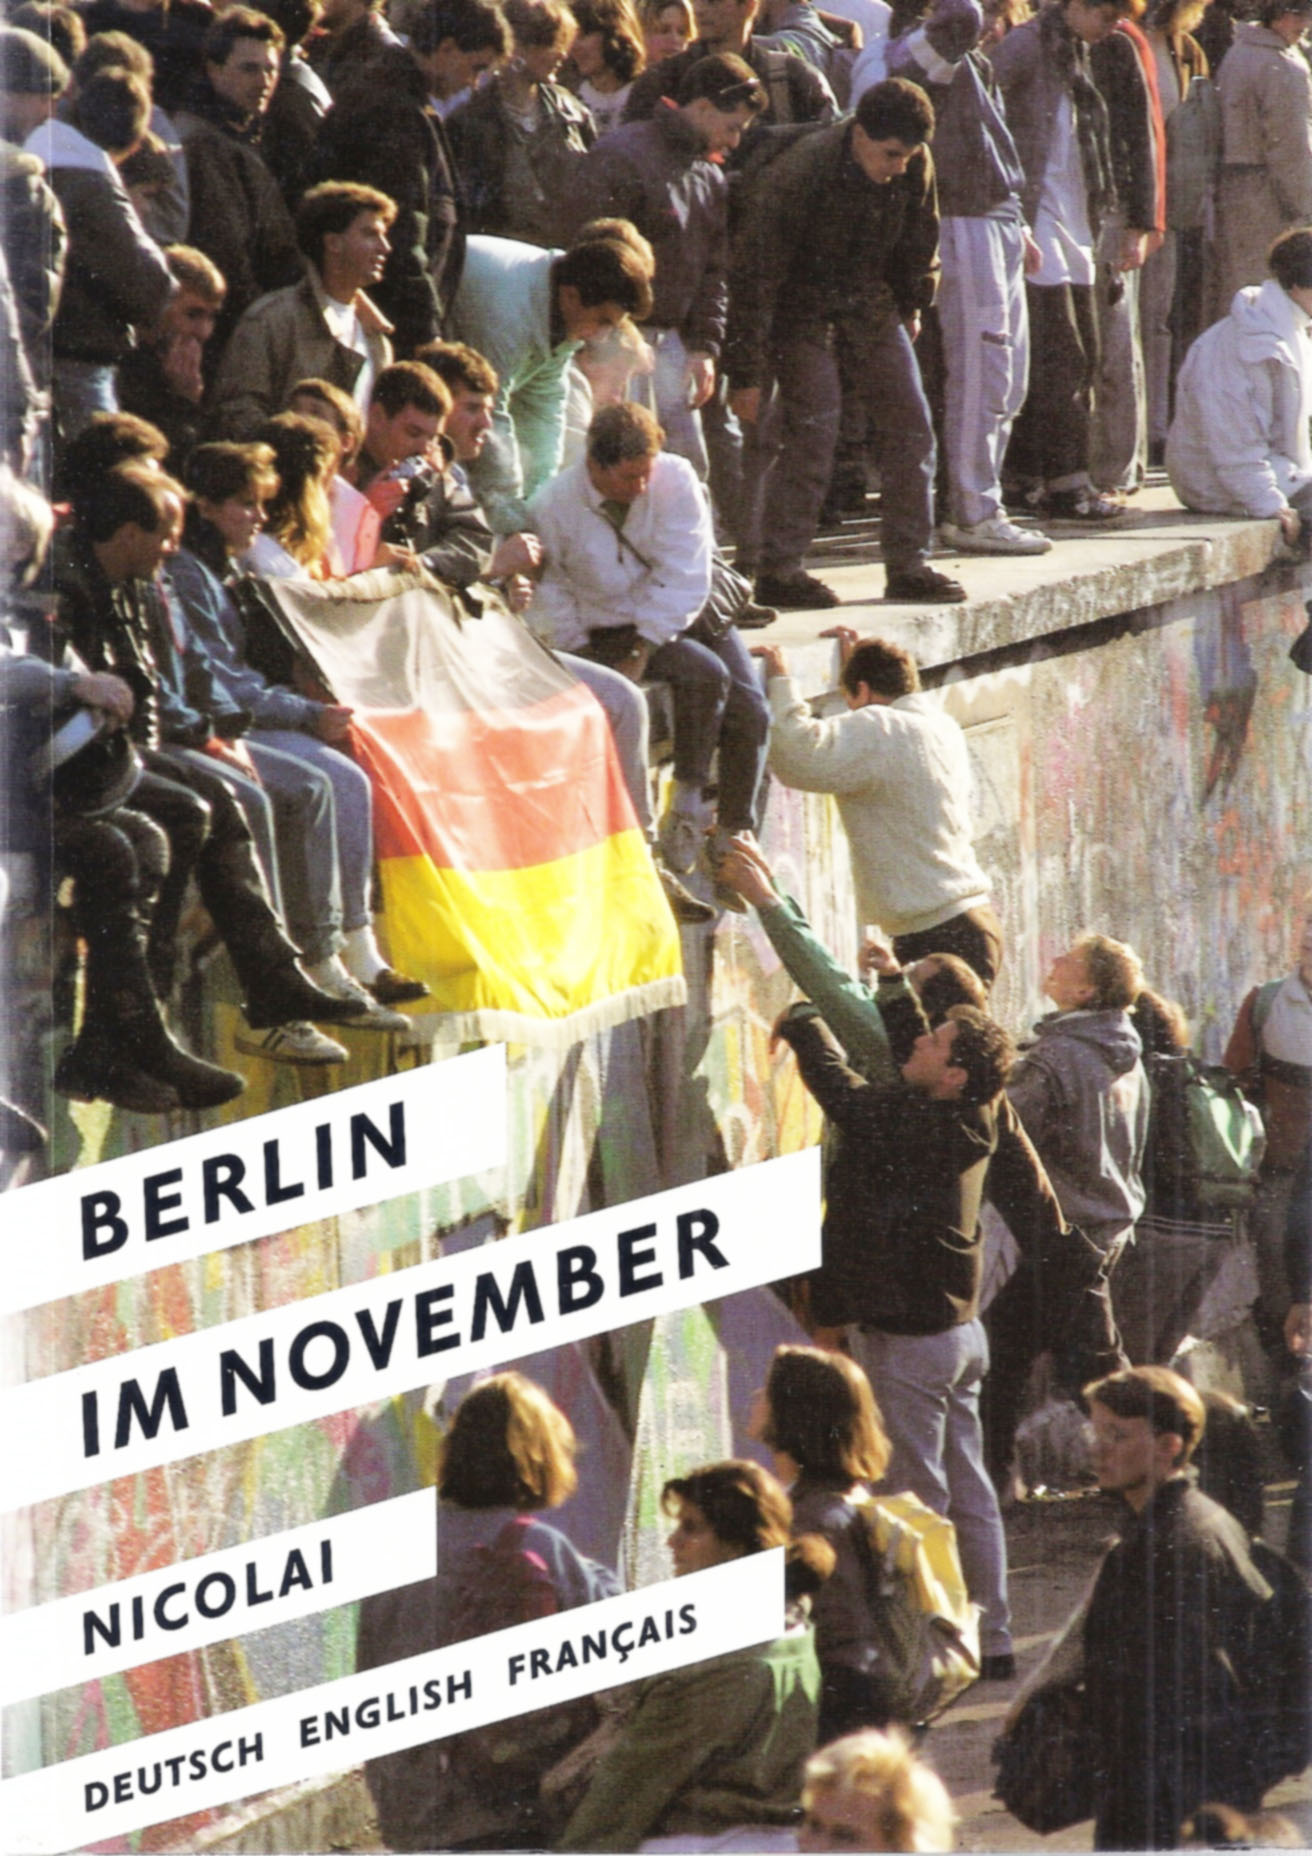 How Did Berlin Became Divided D Berlinnovember